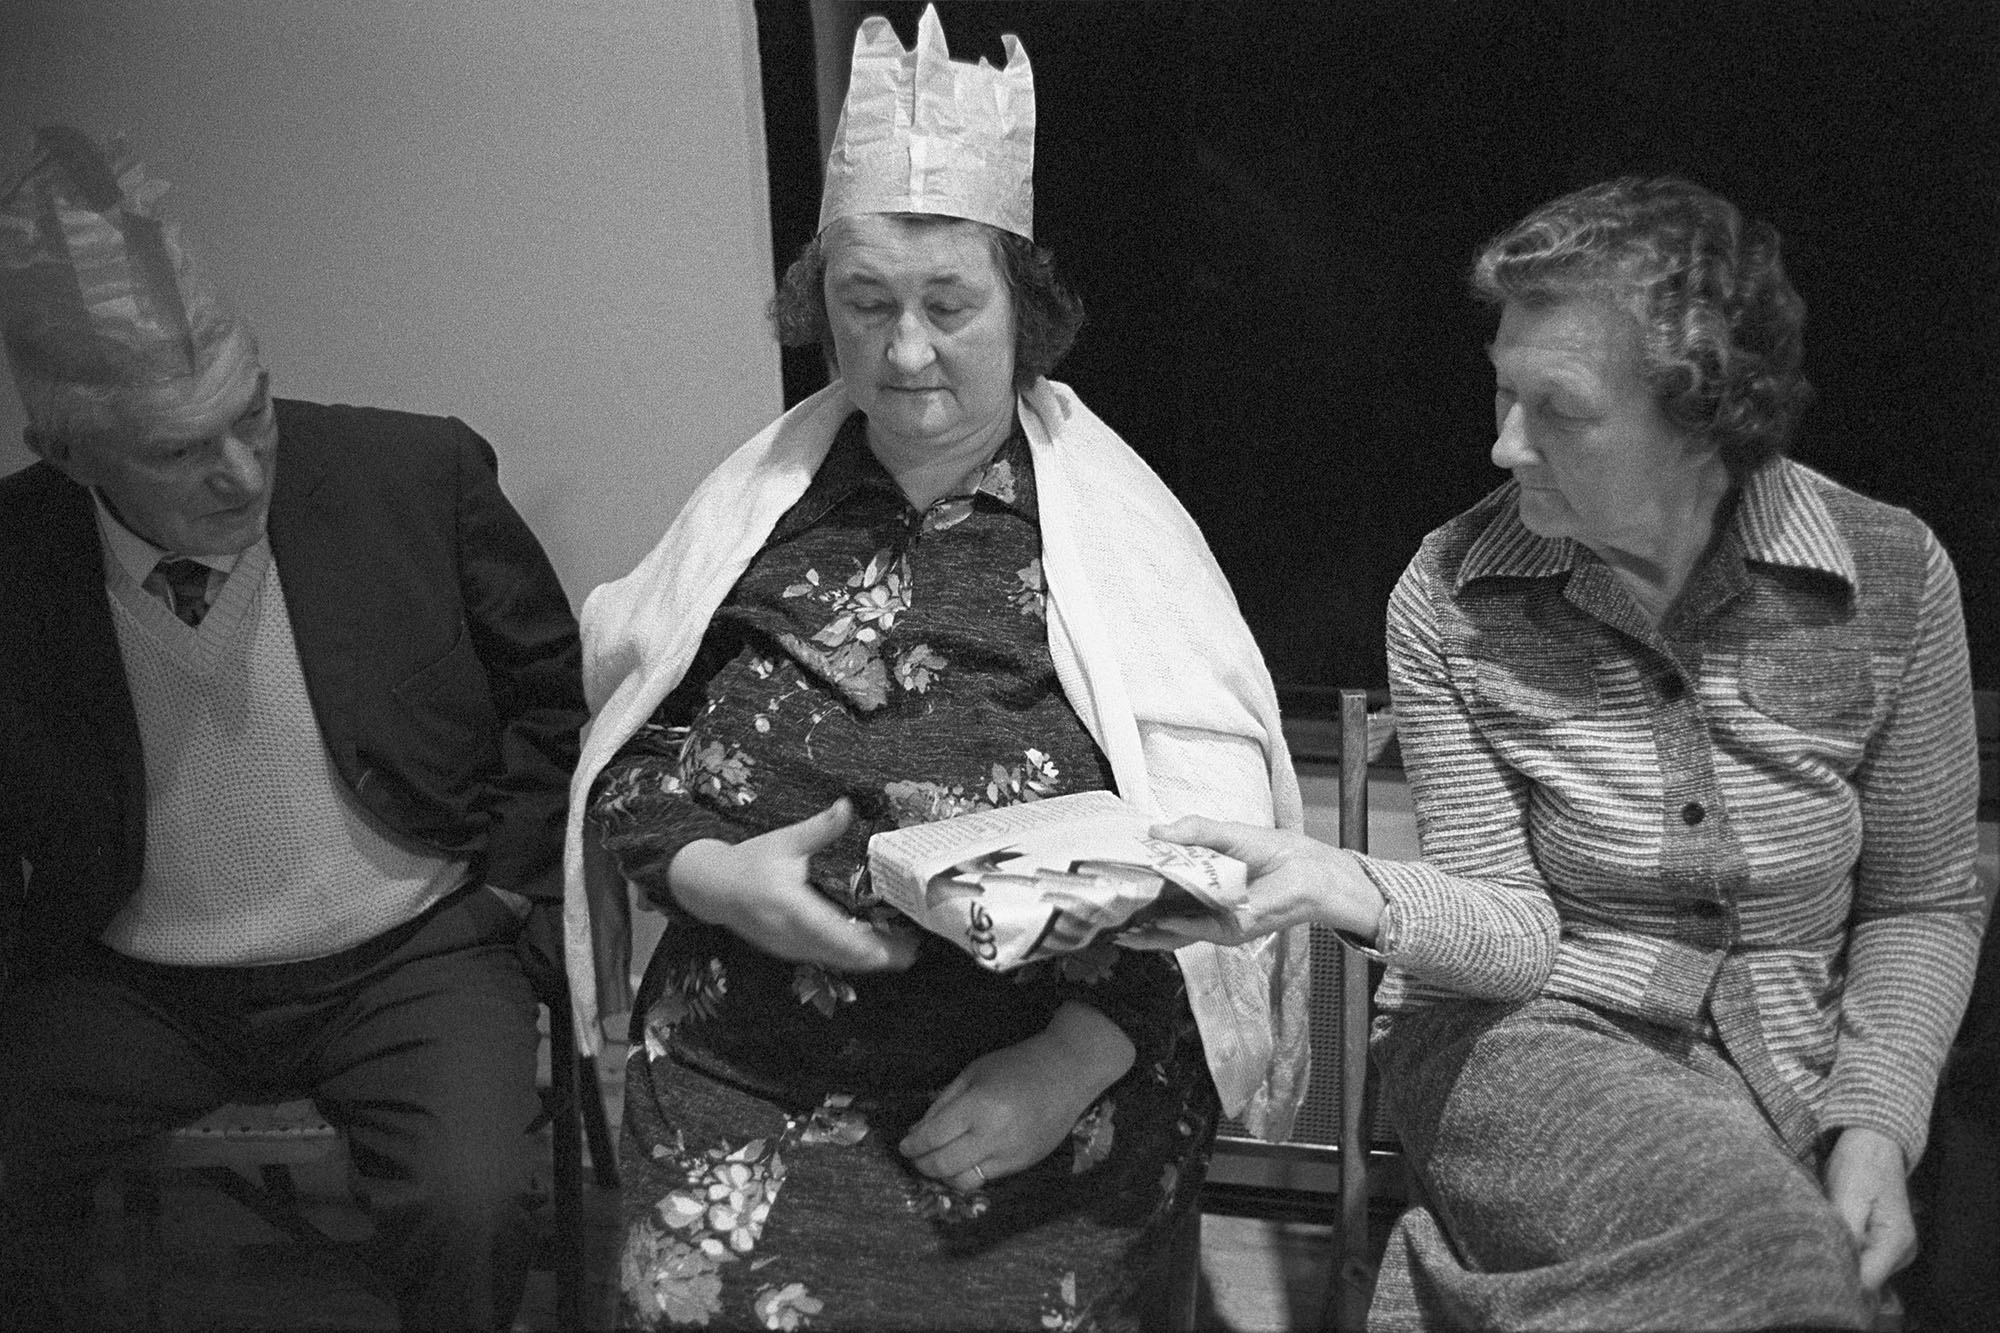 Pass the Parcel, games at Christmas party in village hall. <br /> [Two women and a man playing a game of pass the parcel at a Christmas Party in Beaford Village Hall. One of the women is wearing a paper hat.]